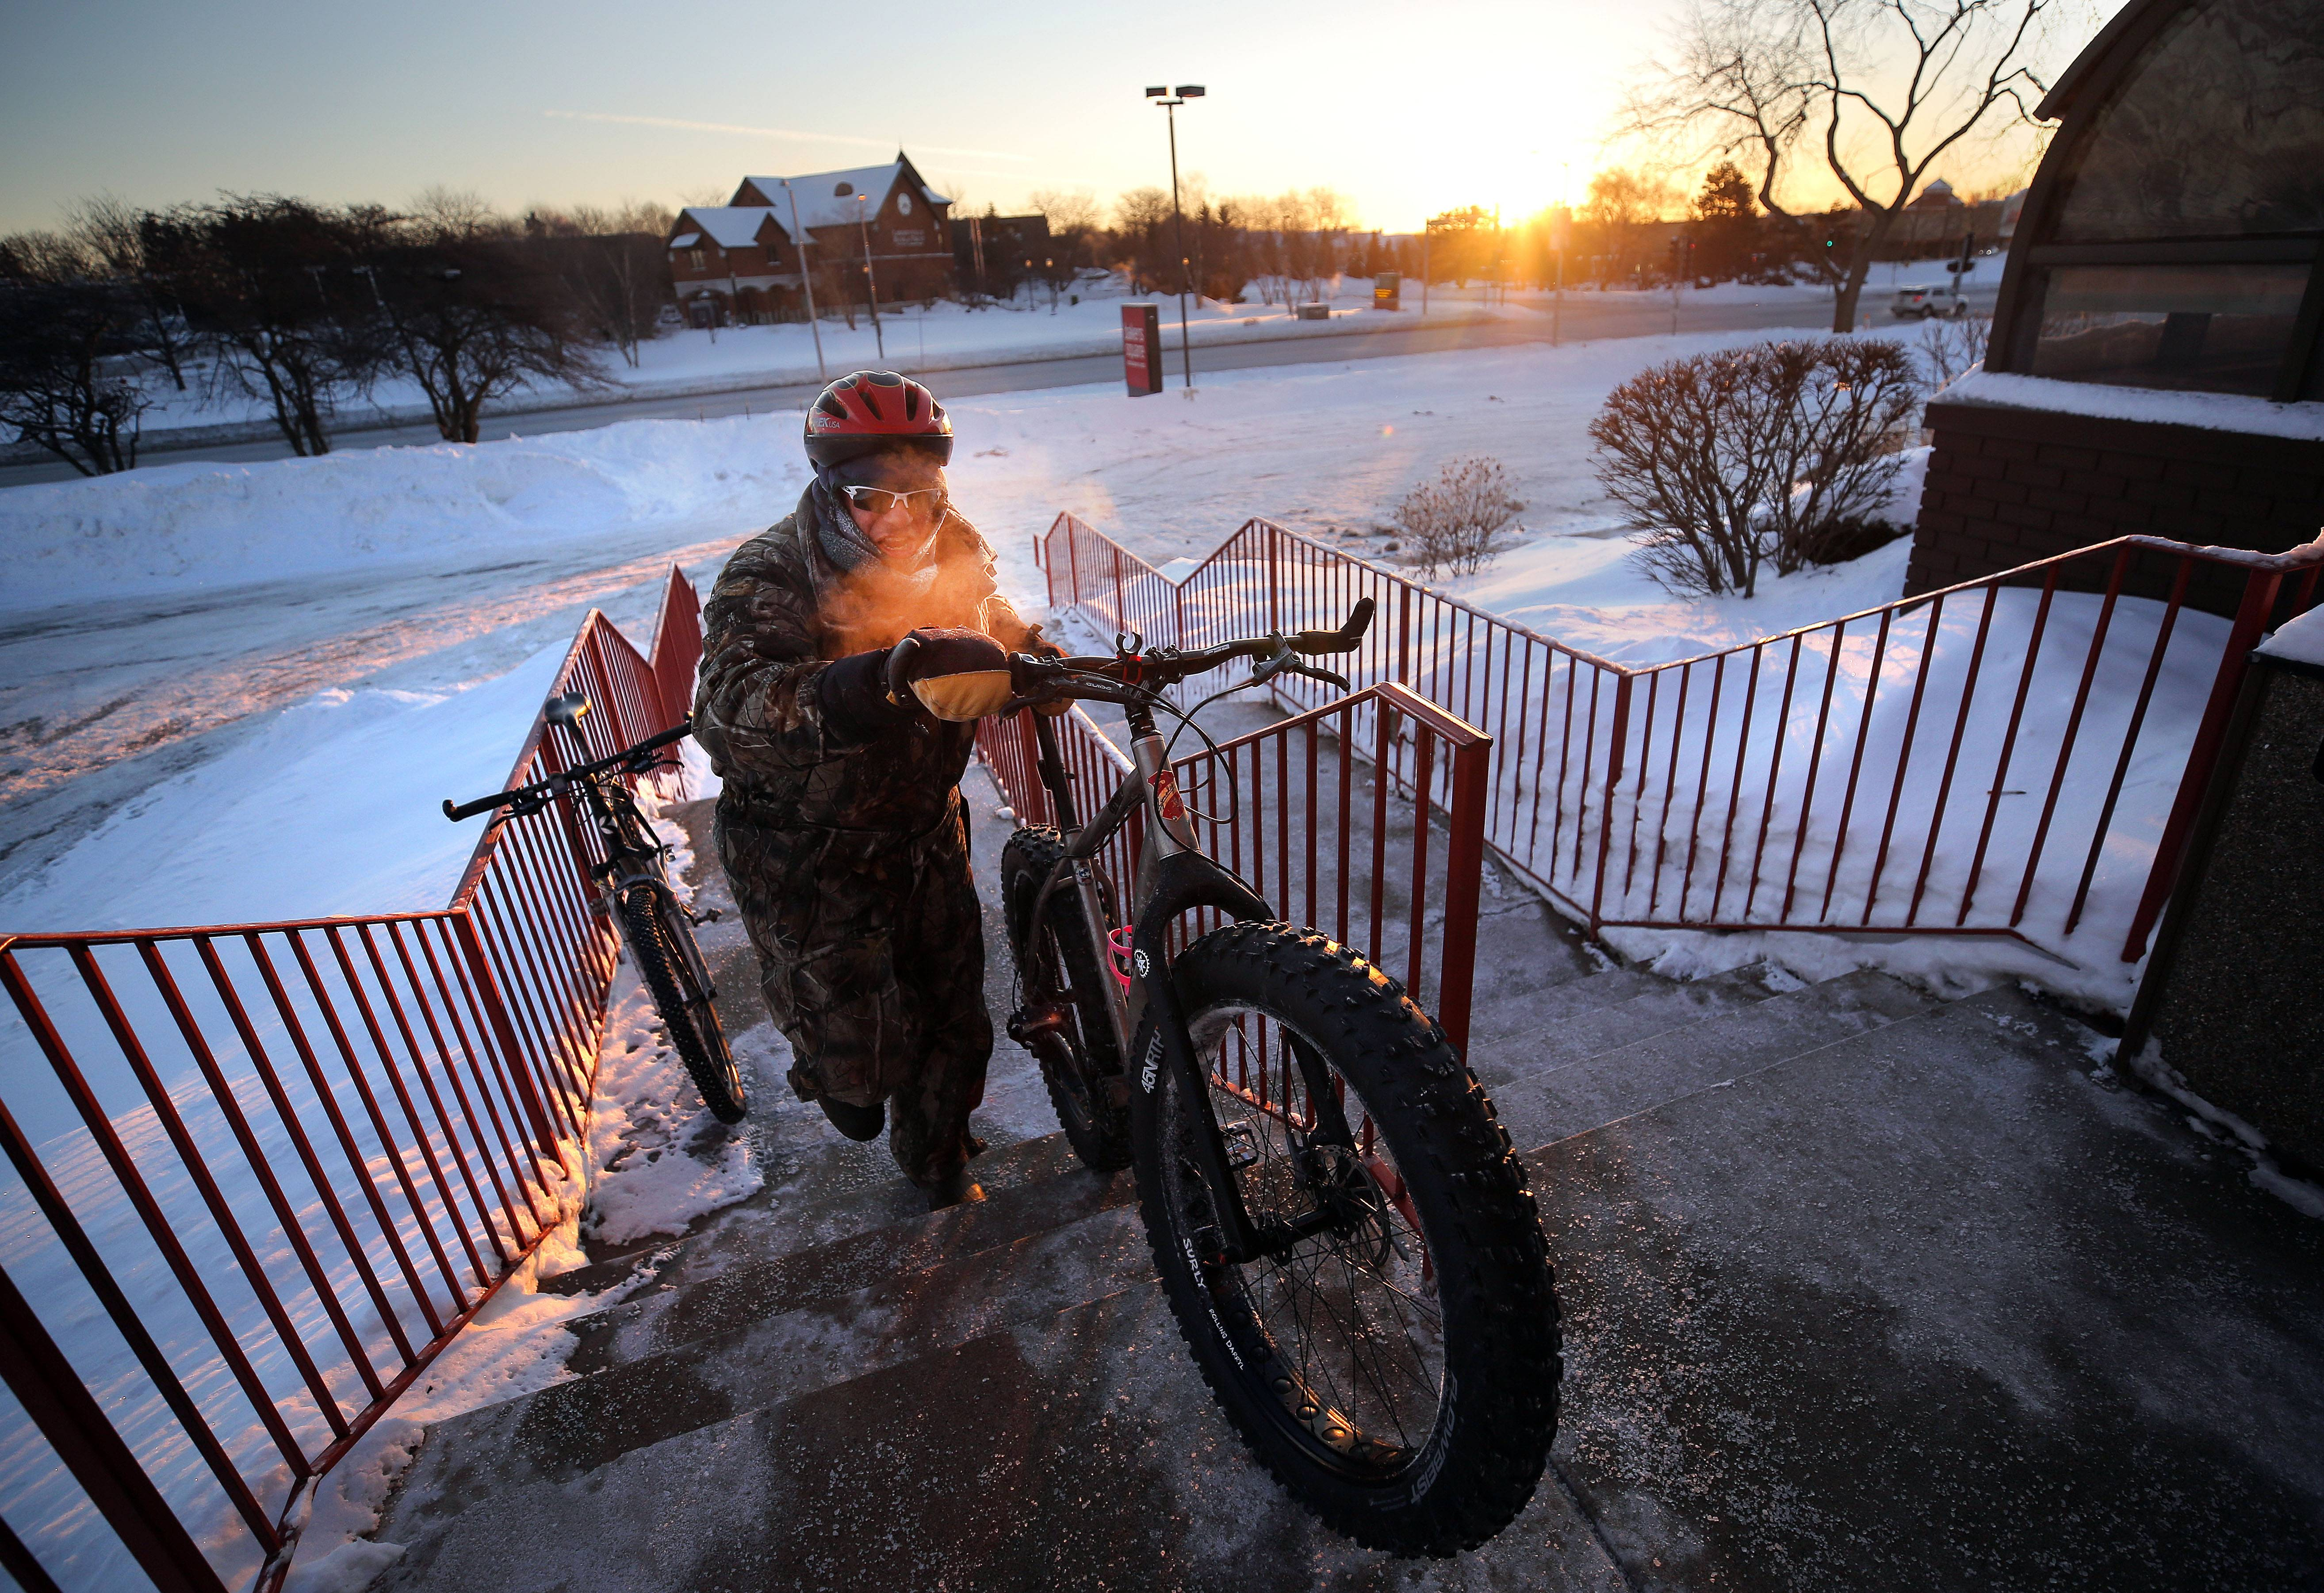 Peter Sherman, of Old Mill Creek pushes his bike up to the Bakers Square in Libertyville after a group ride as temperatures hovered around -20 Thursday morning in Lake County.